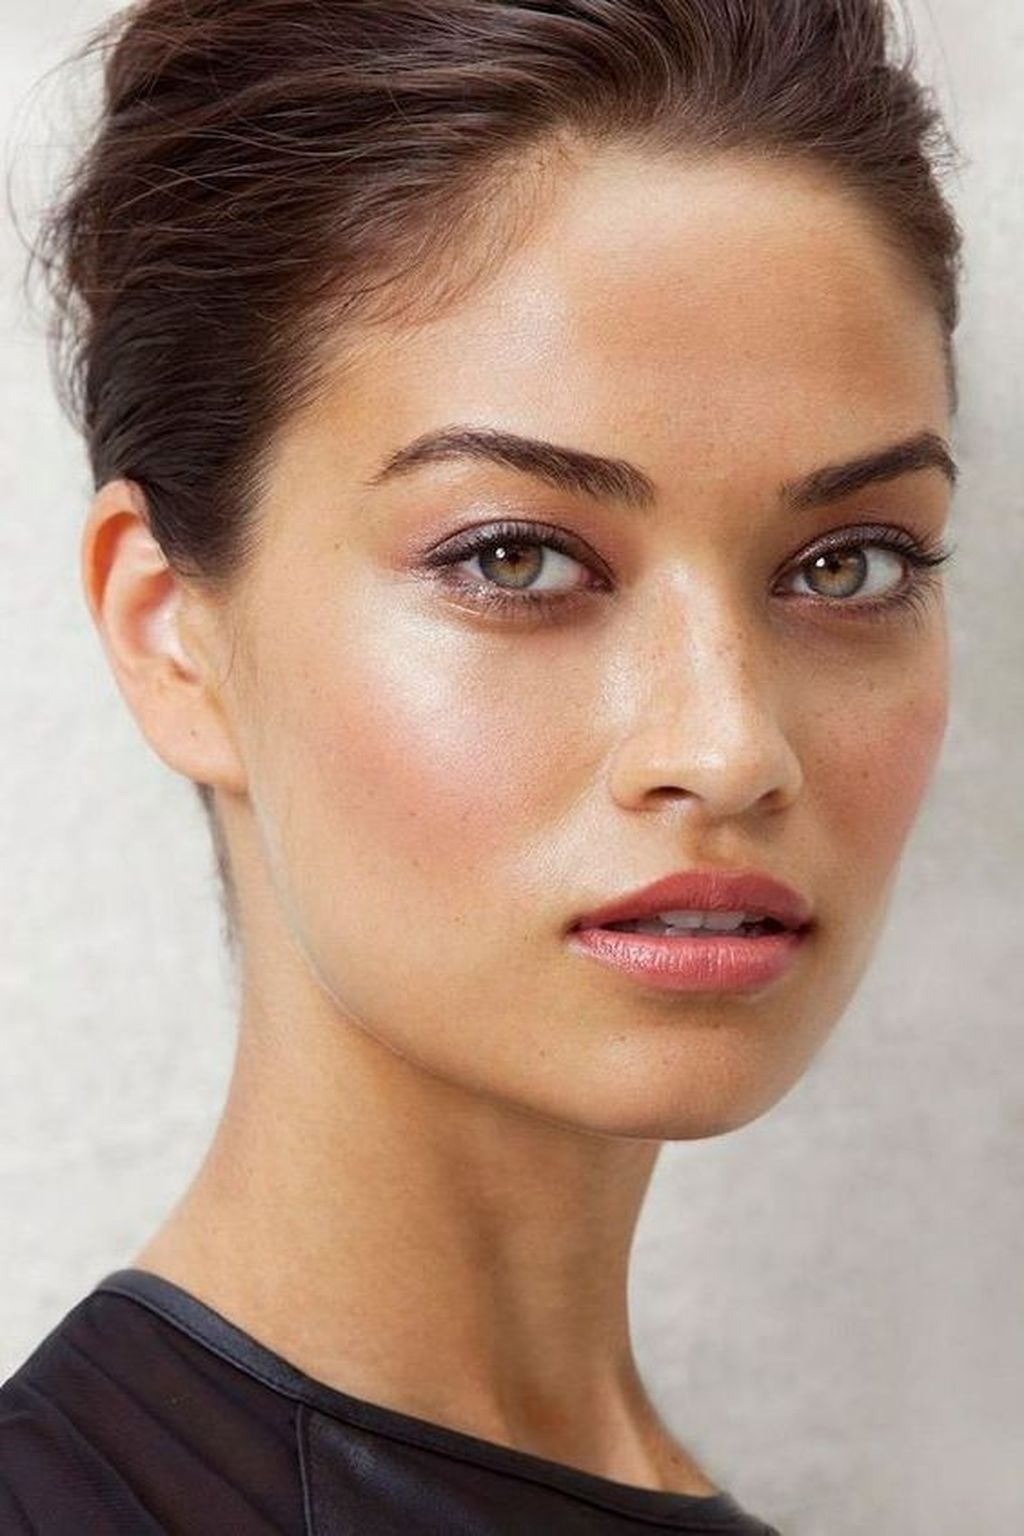 42 Magnificient Makeup Ideas For Beginner To Try This Year